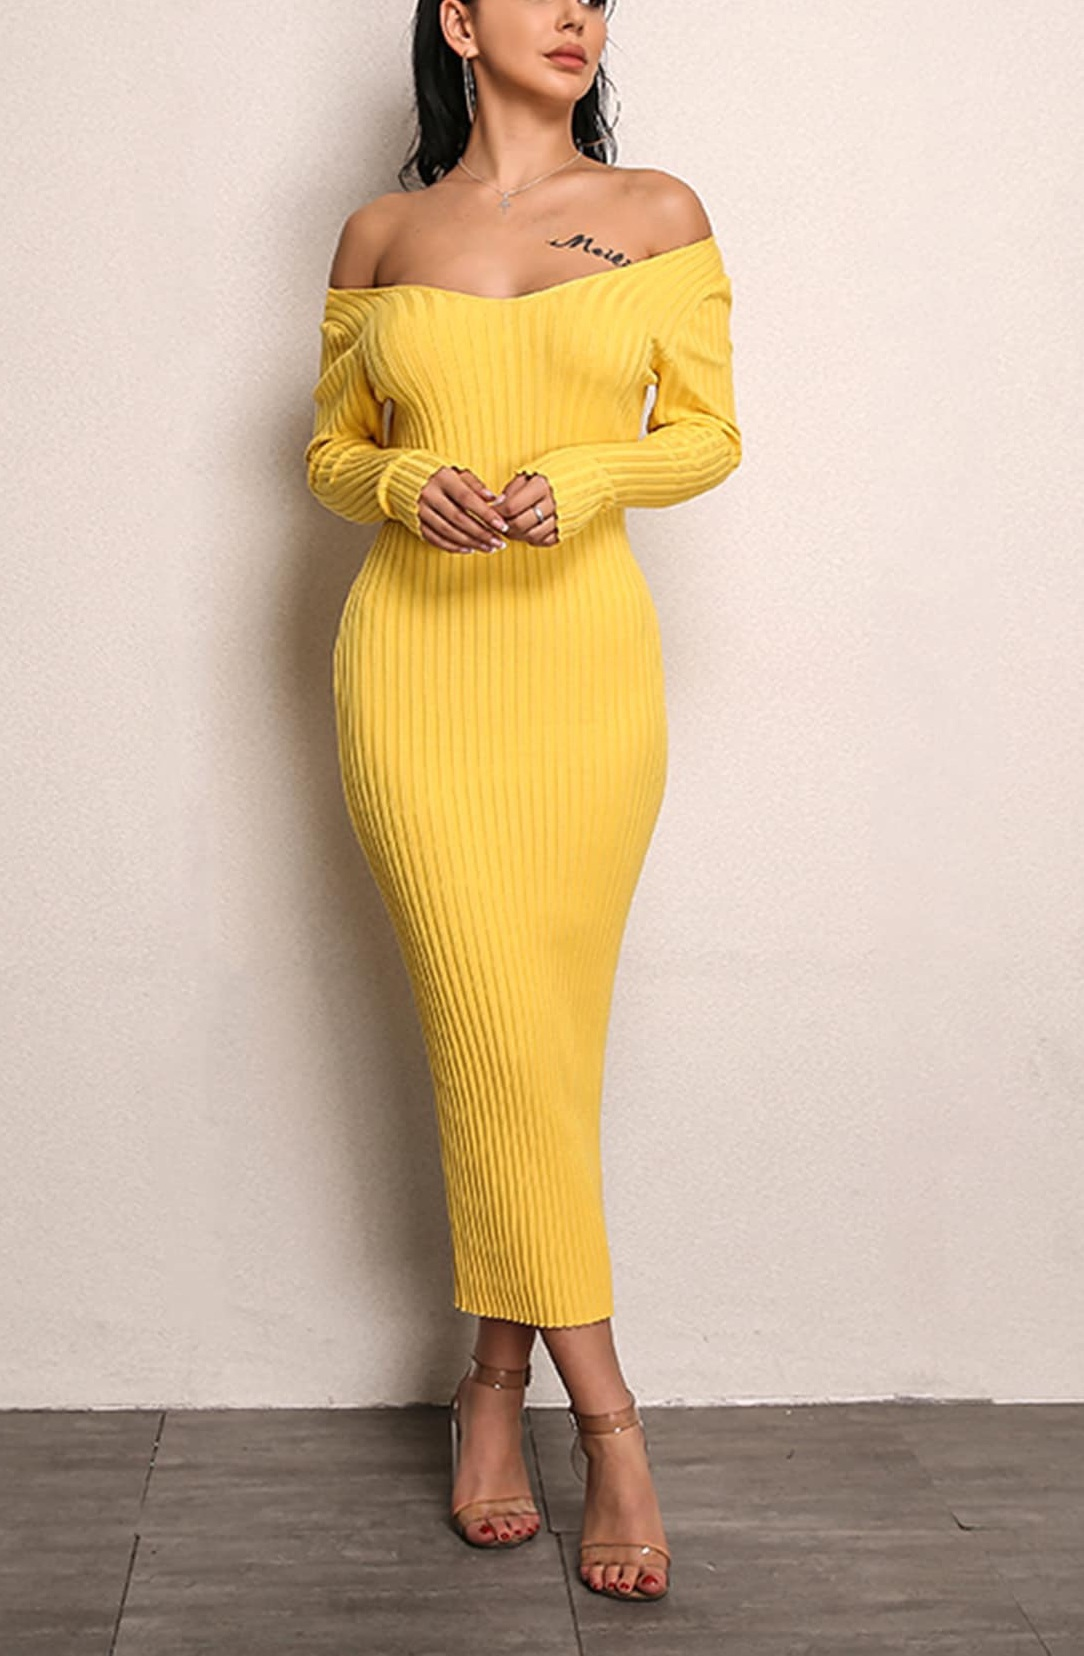 ac2ef458a627 dress body girly girl girly wishlist yellow yellow dress bodycon dress  bodycon off the shoulder off